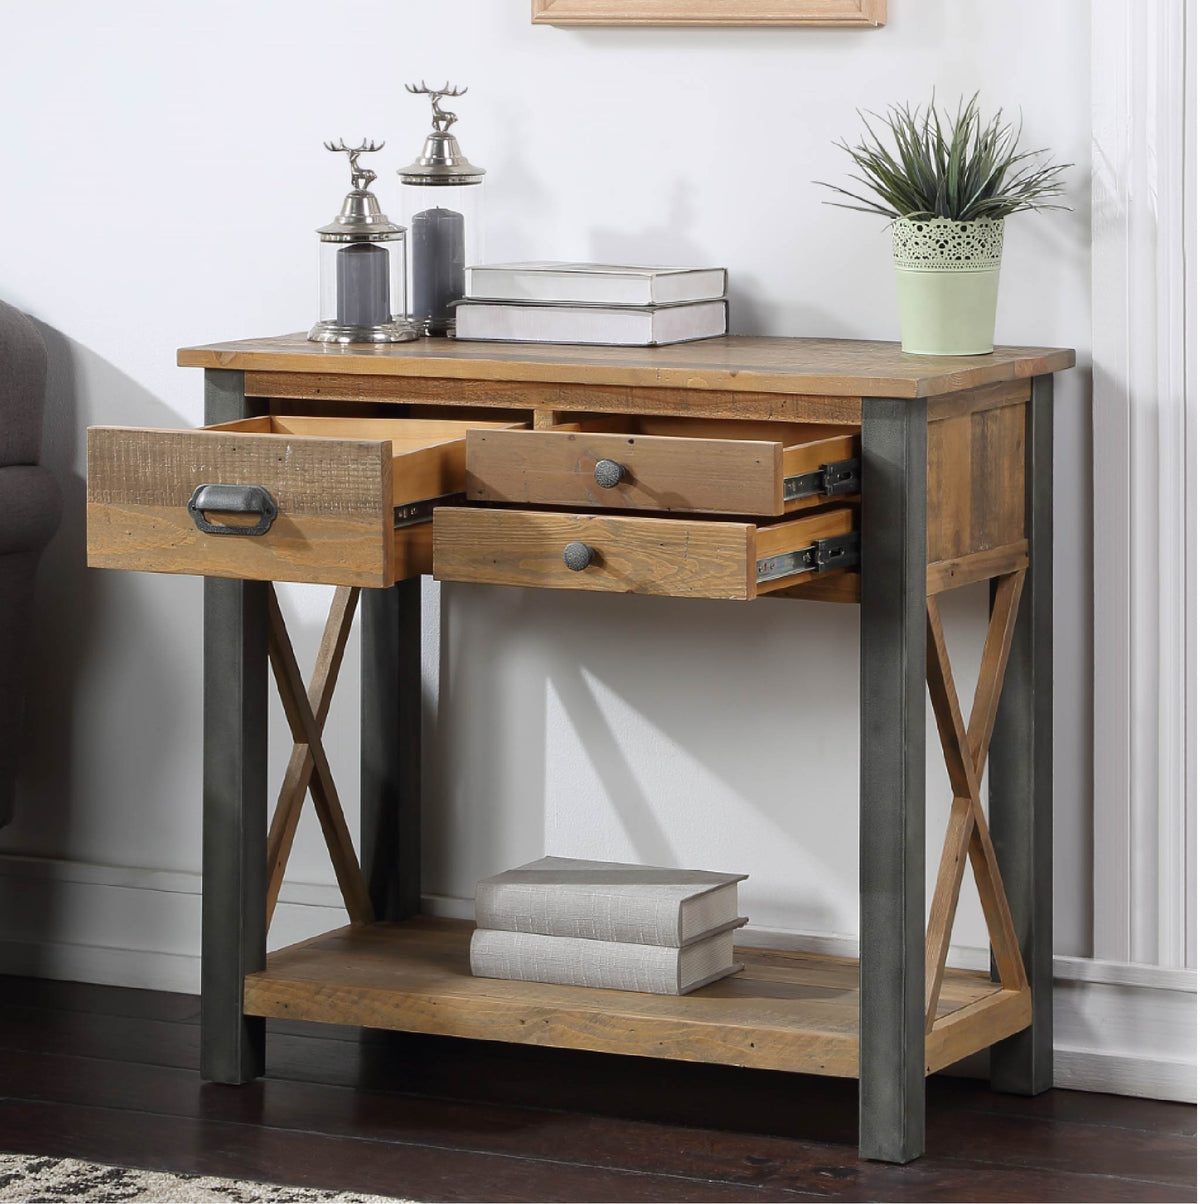 Open drawer view of Urban Elegance Reclaimed Wood Small Console Table